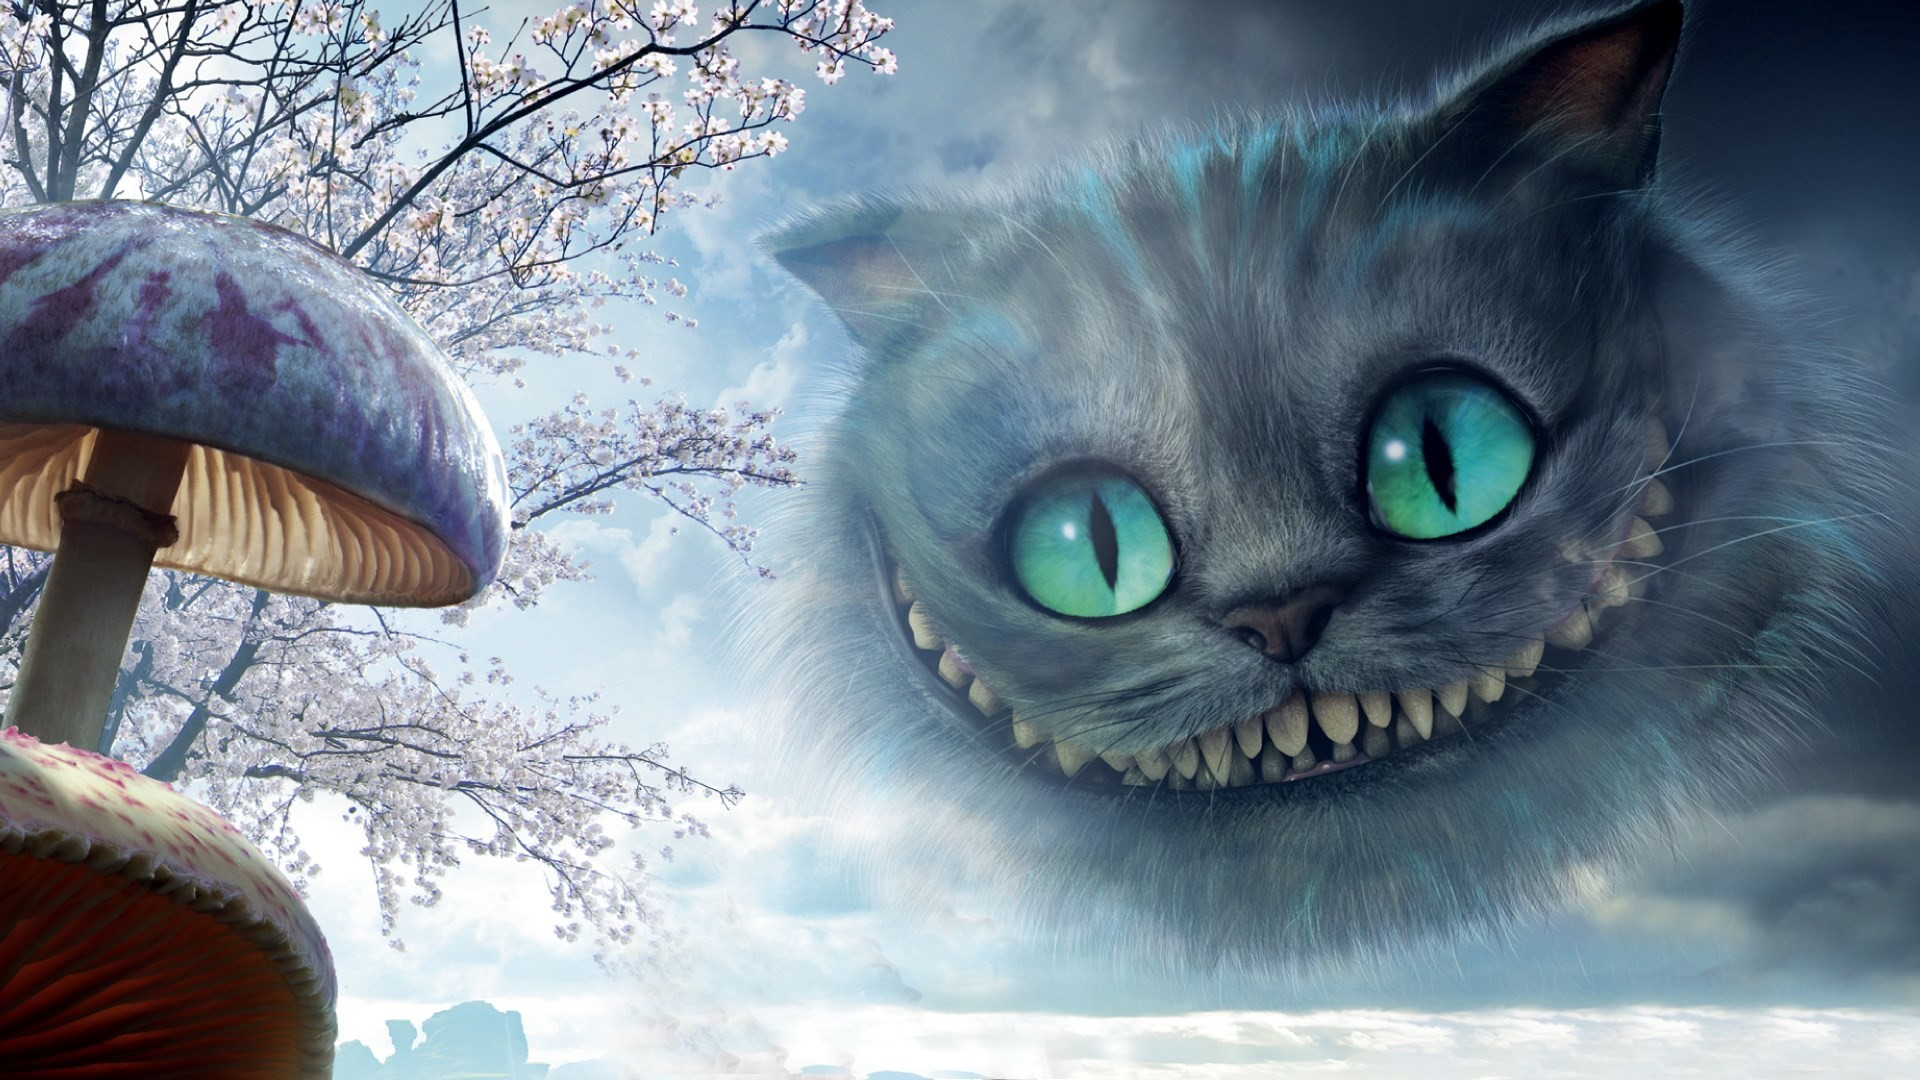 Hd Cat Wallpapers 1920x1080 69 Images: Cheshire Cat Wallpapers (65+ Images